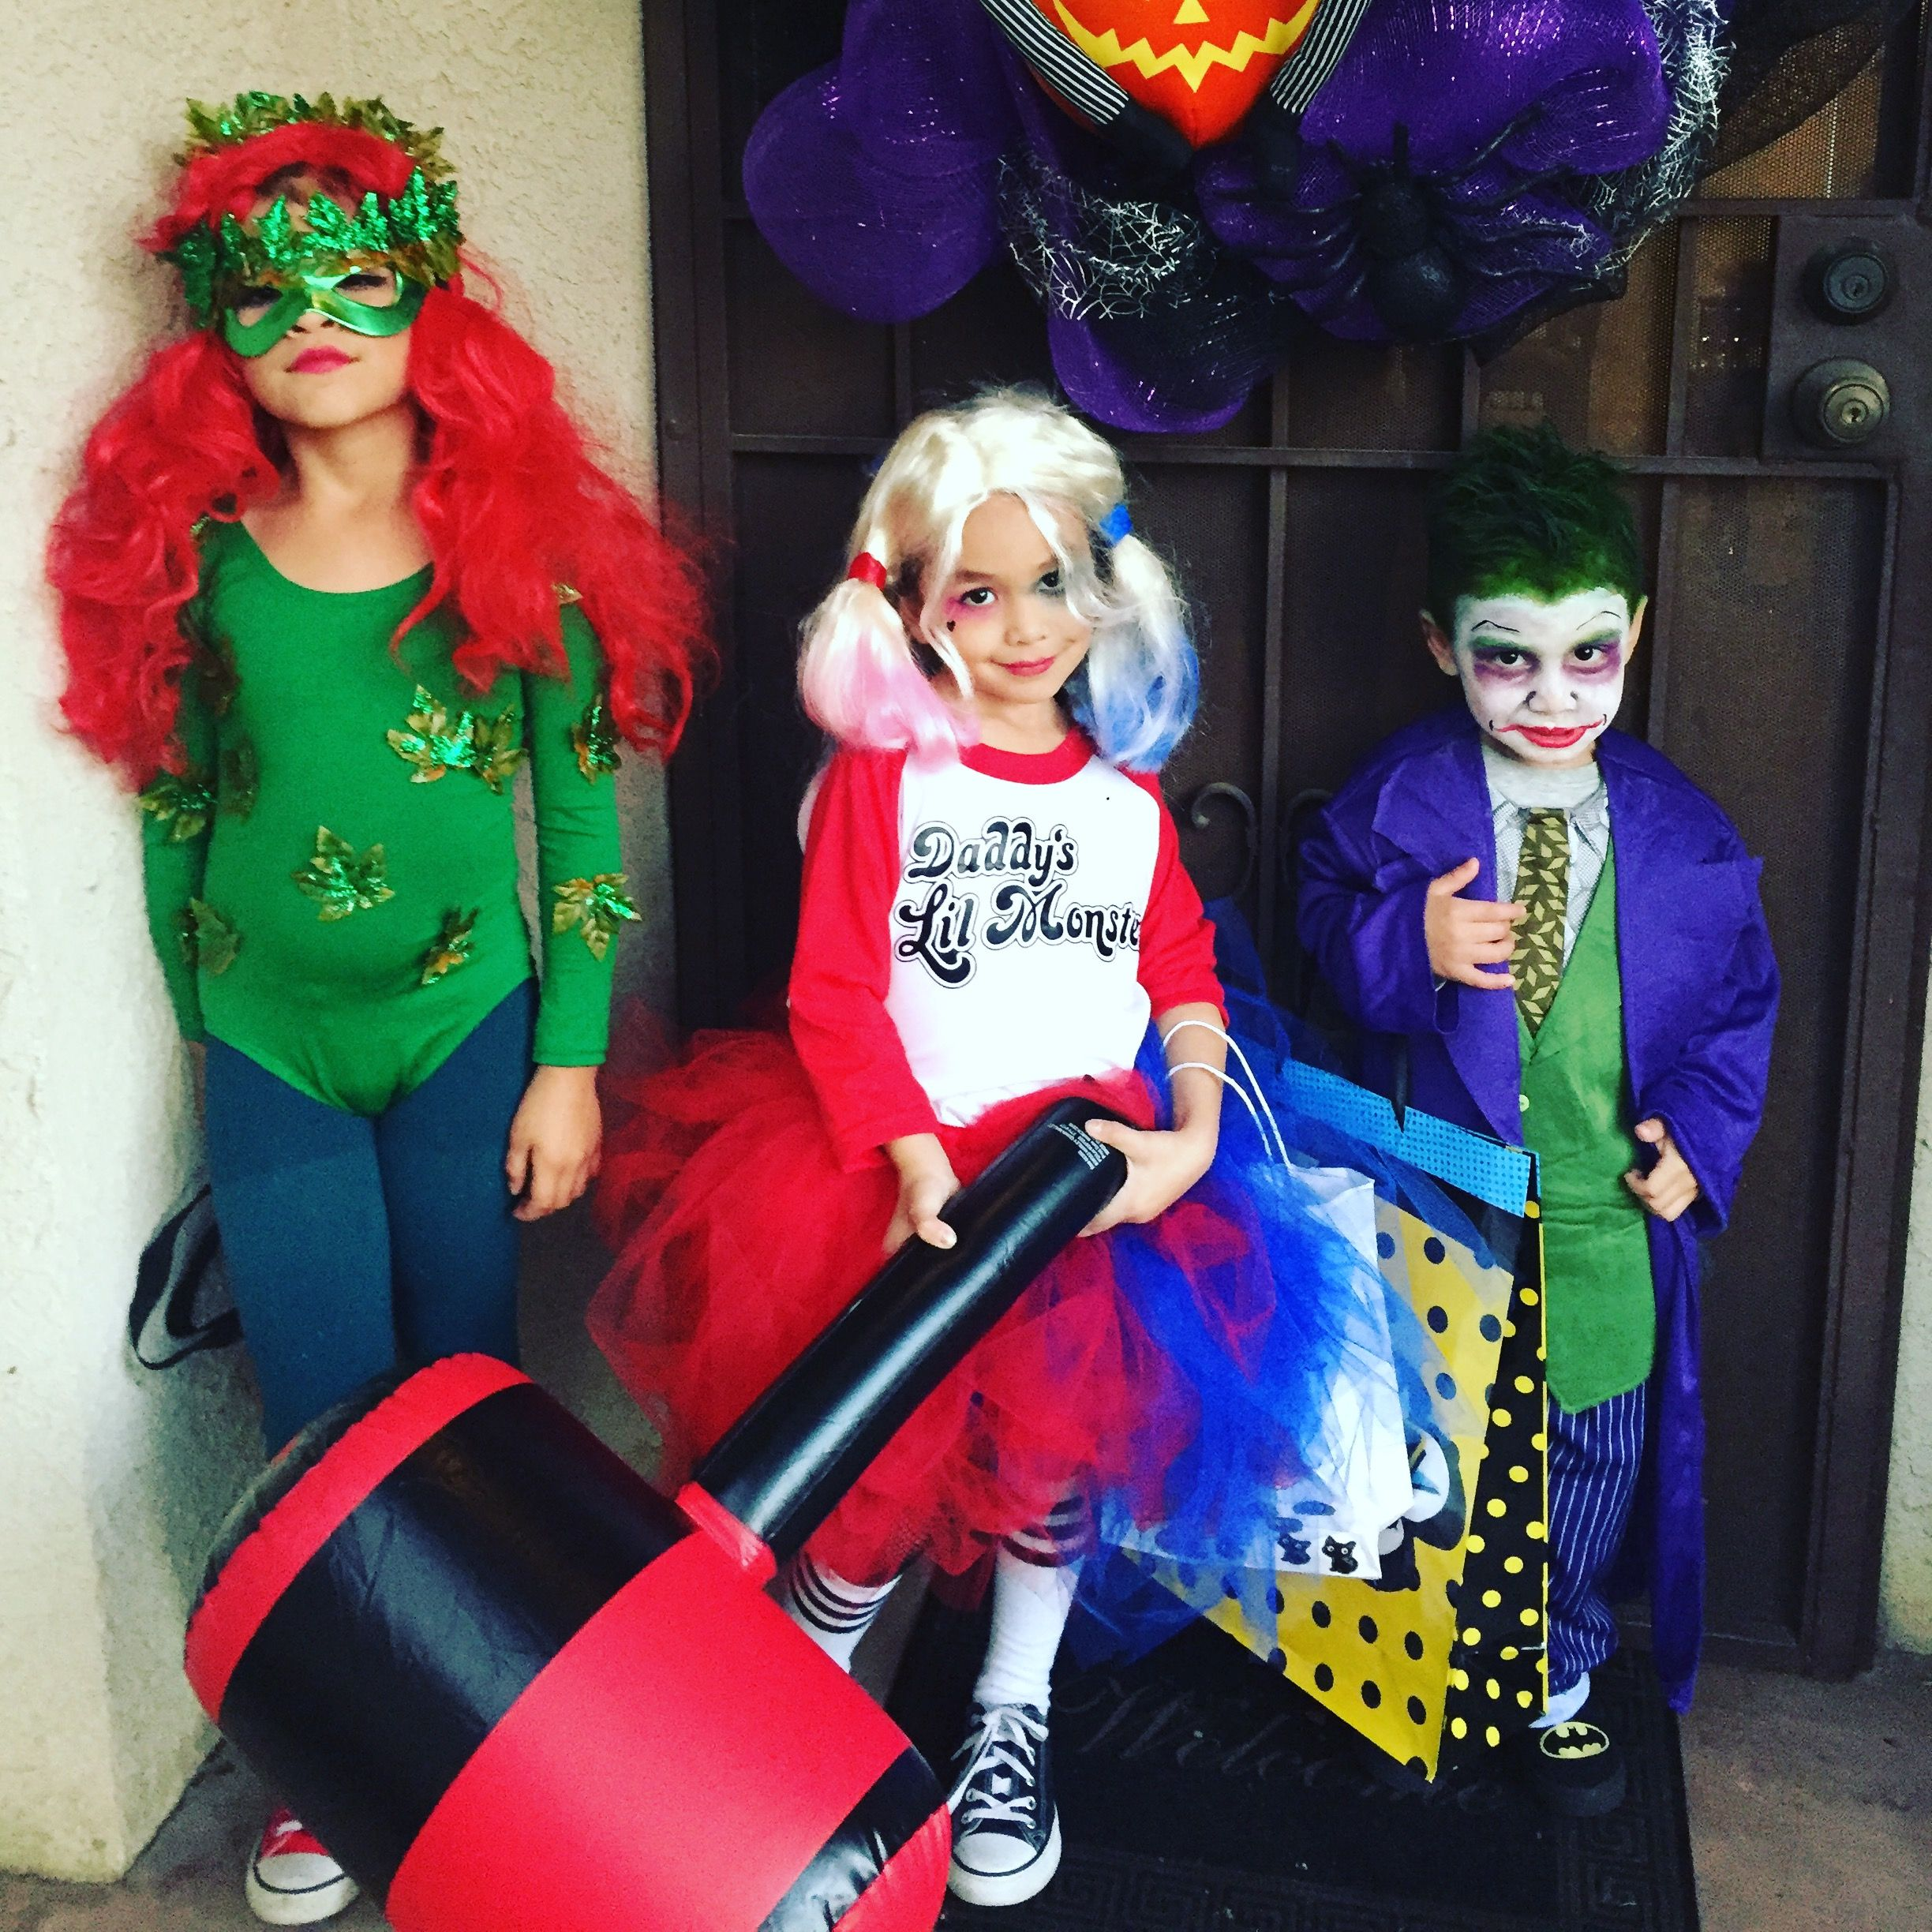 poison ivy harley quinn and joker batman villians kids homemade halloween diycostume - Joker Halloween Costume Kids